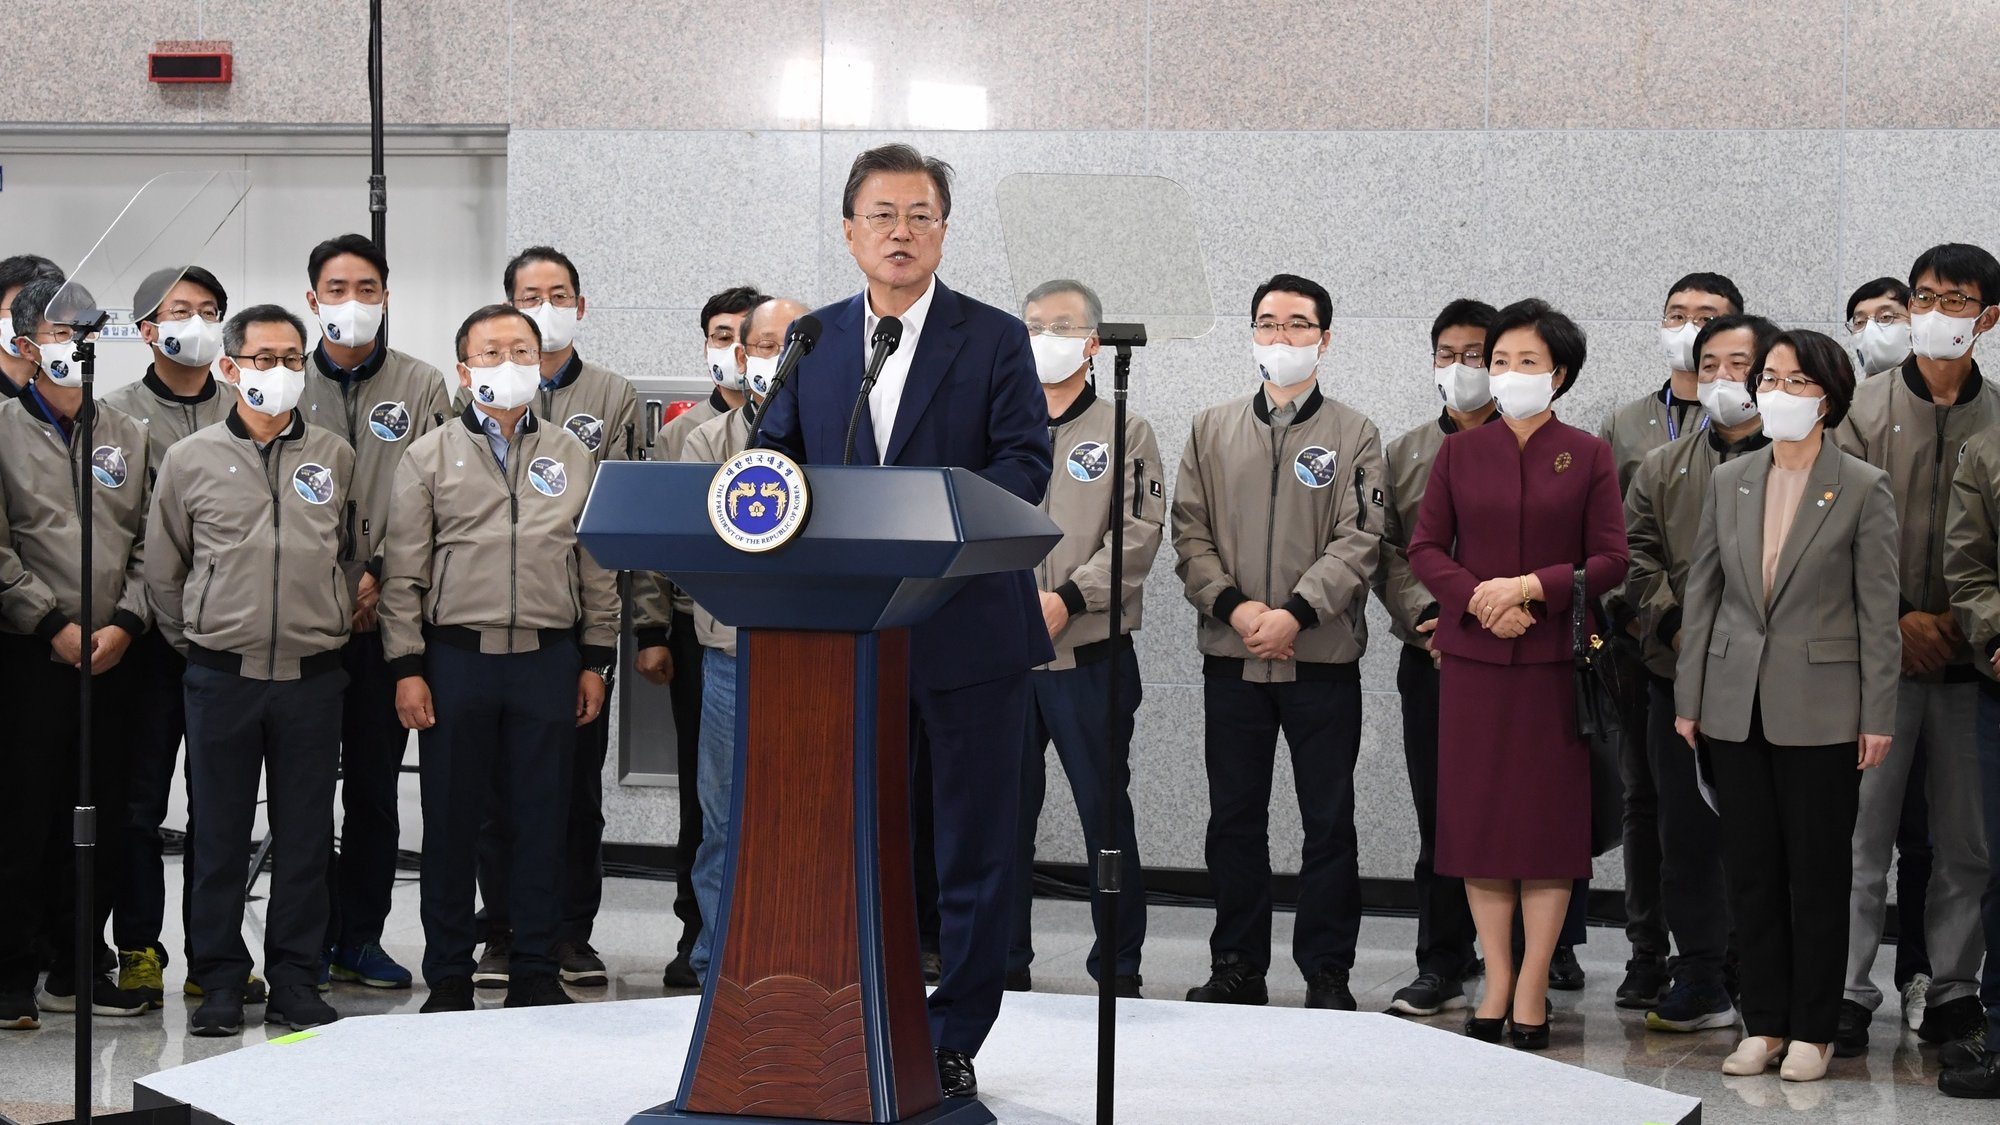 epa09535633 South Korean President Moon Jae-in delivers a public message after the country's first homegrown space launch vehicle, known as Nuri, lifted off from the Naro Space Center in Goheung, South Korea, 21 October 2021.  EPA/YONHAP SOUTH KOREA OUT